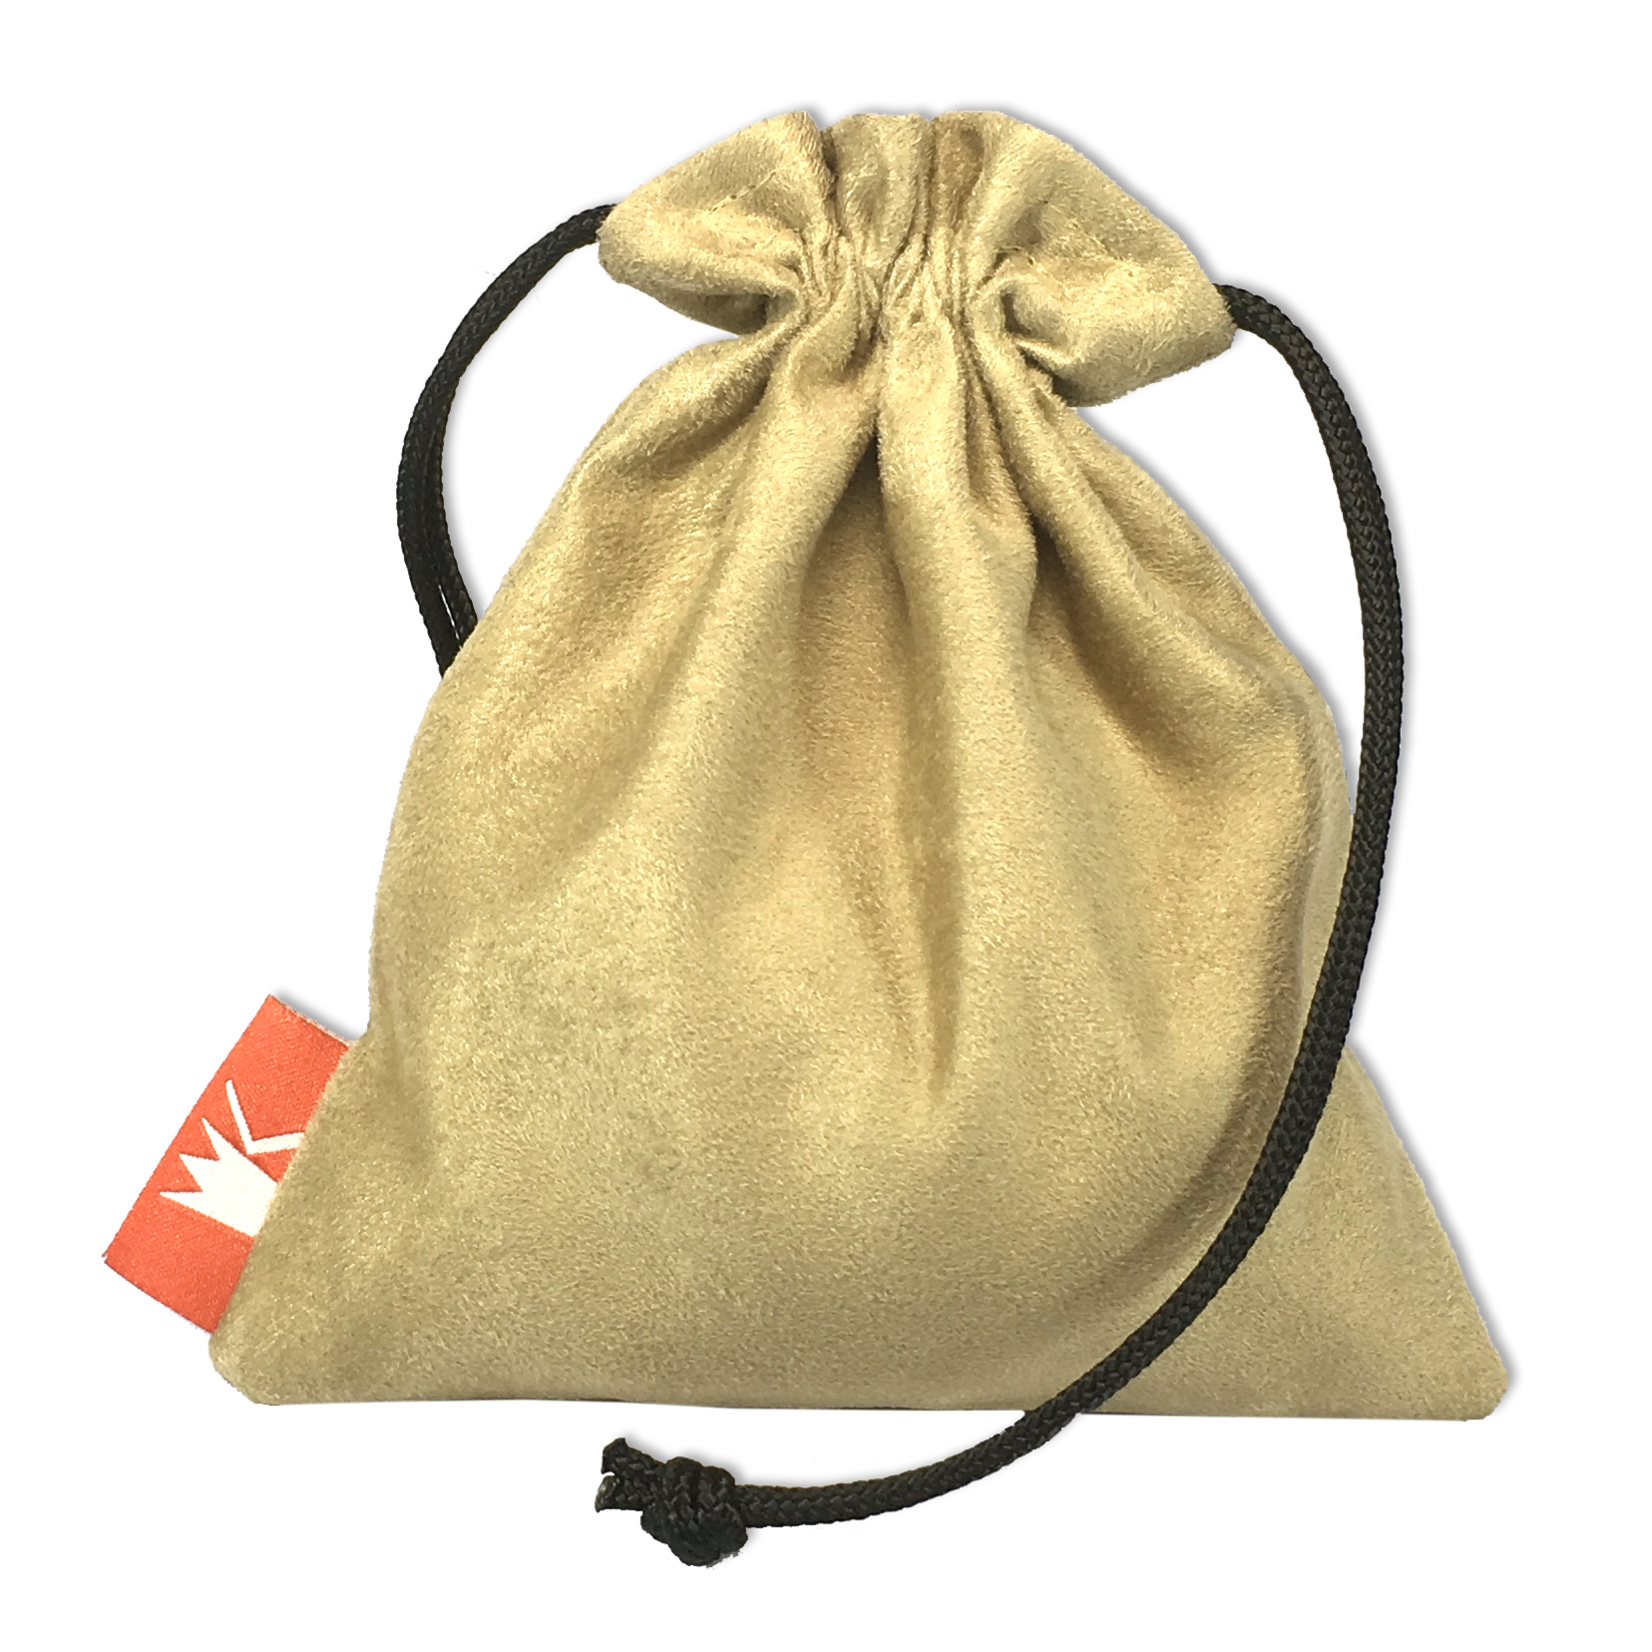 Red King Red King Dice Pouch: Tan